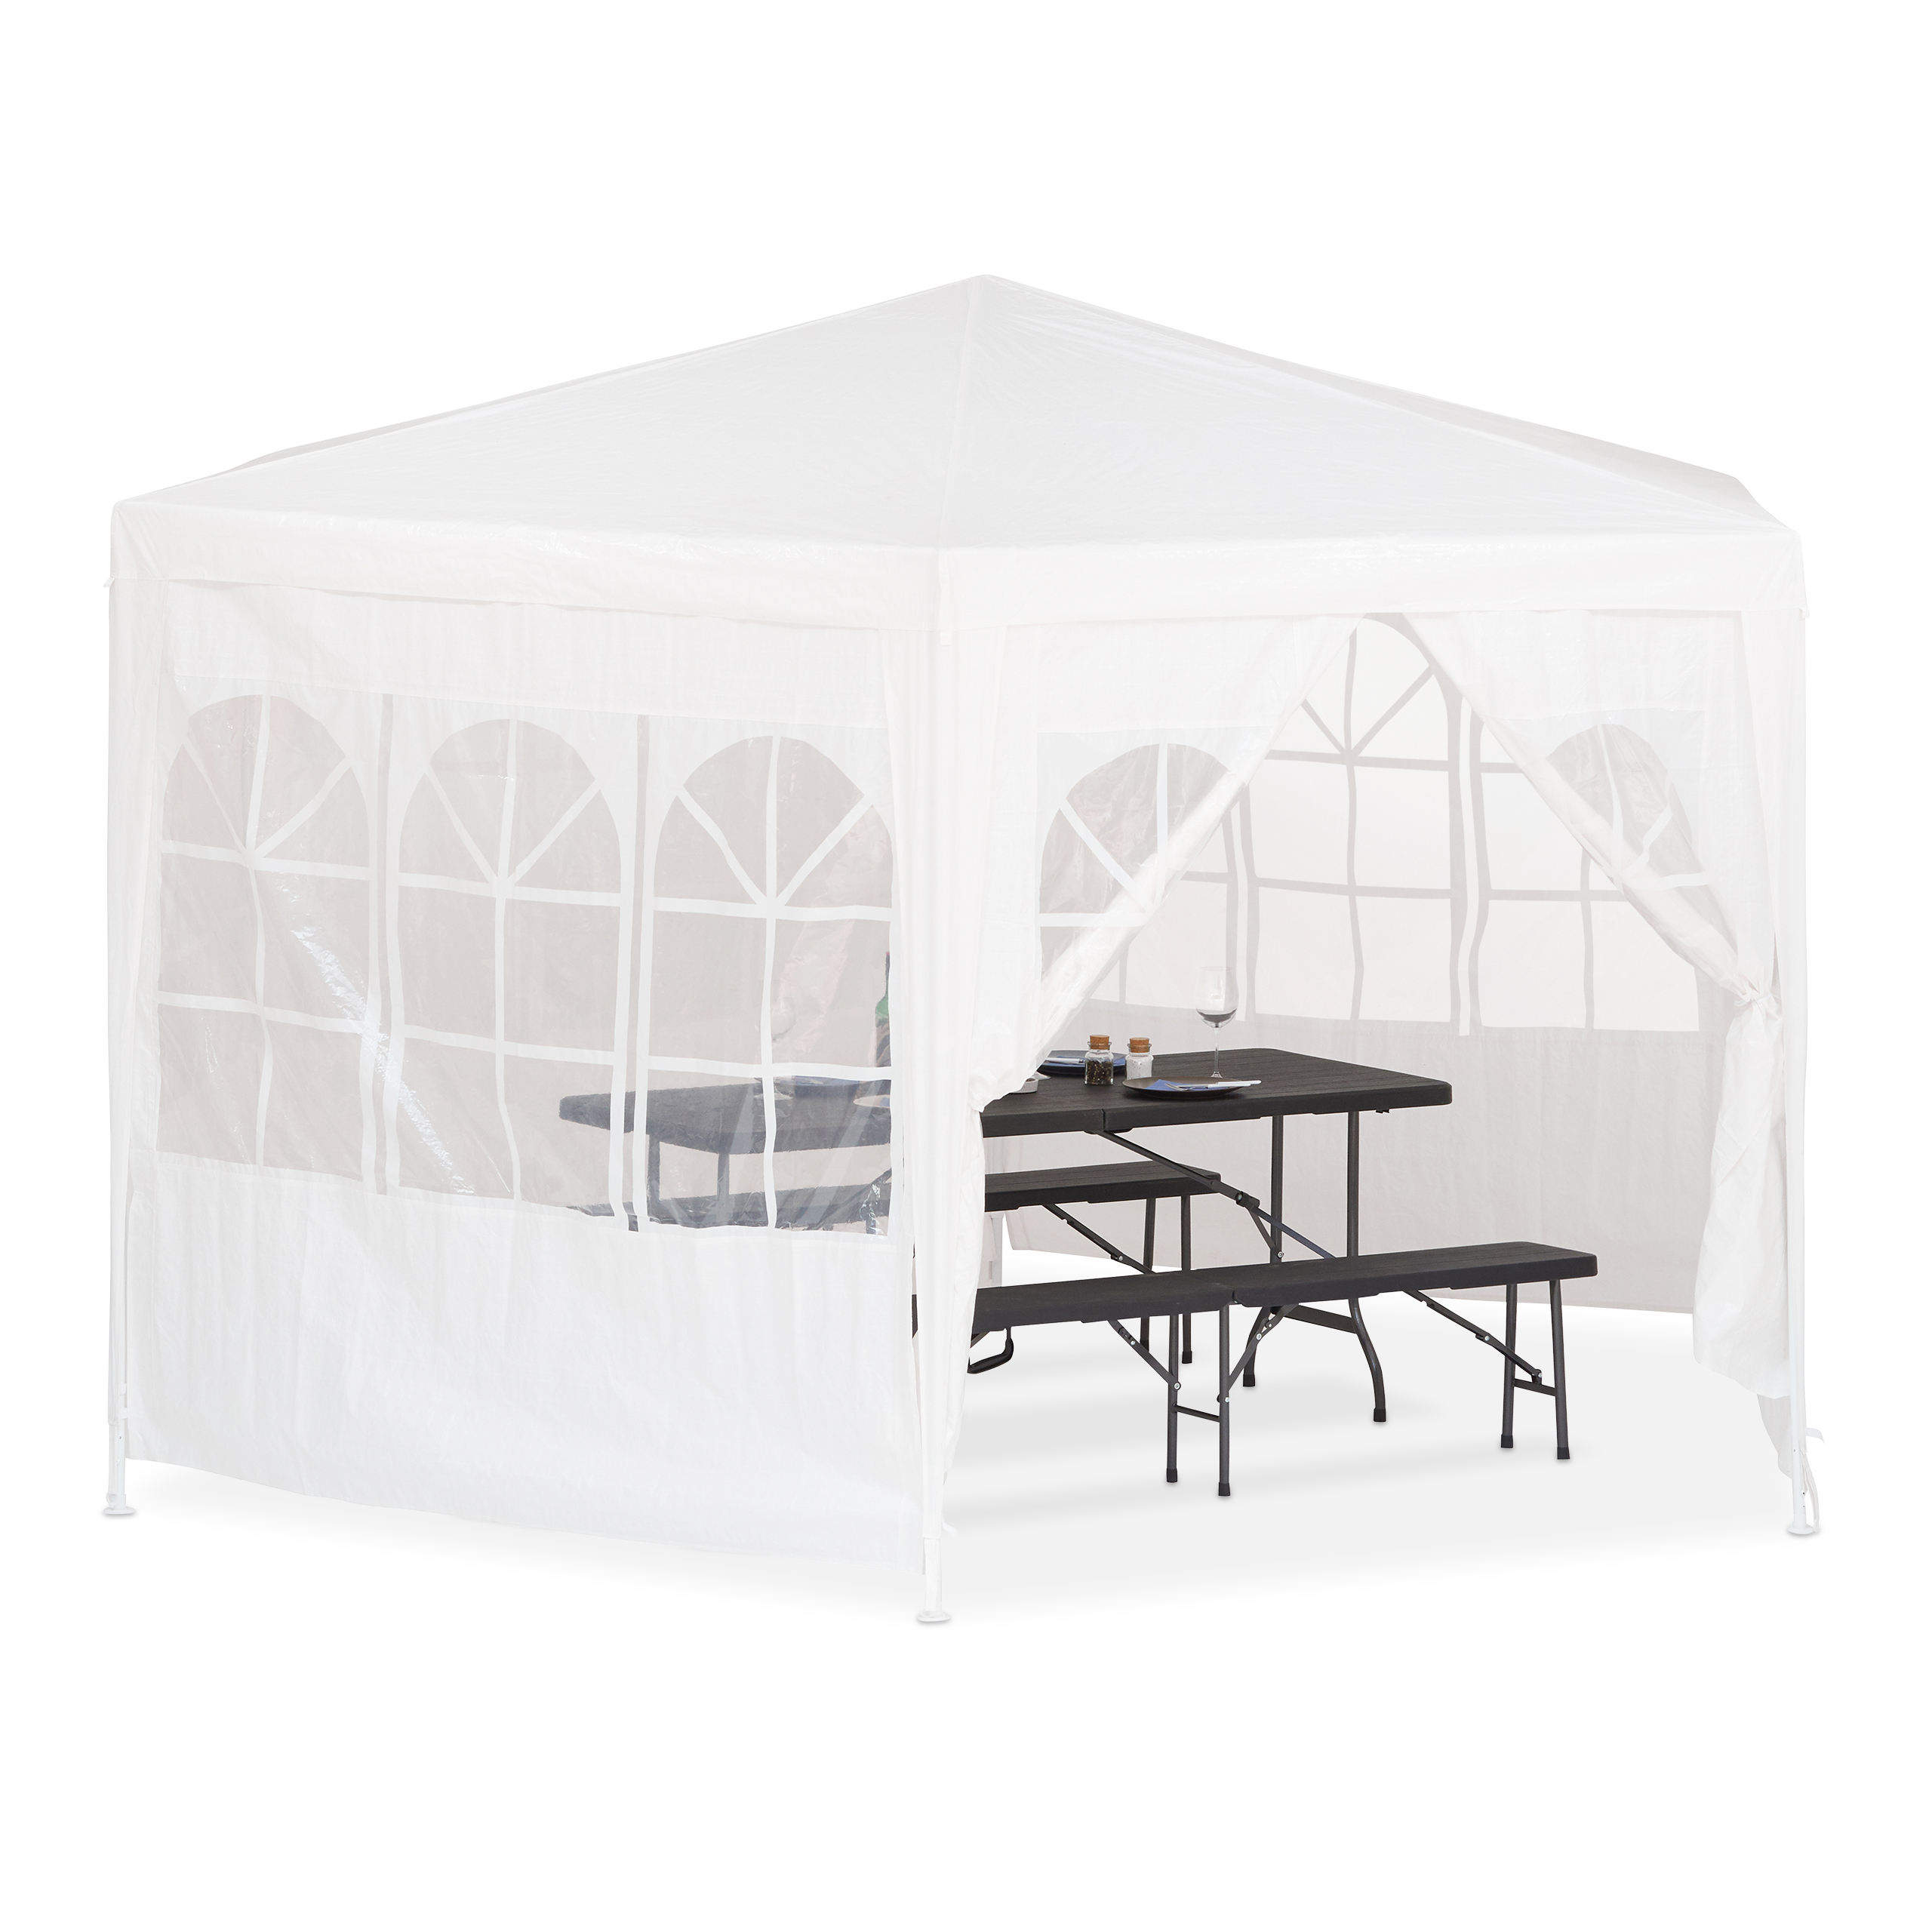 pavillon 6 eckig mit seitenw nden bierzelt partyzelt 2x2x2x2 5m wei ebay. Black Bedroom Furniture Sets. Home Design Ideas